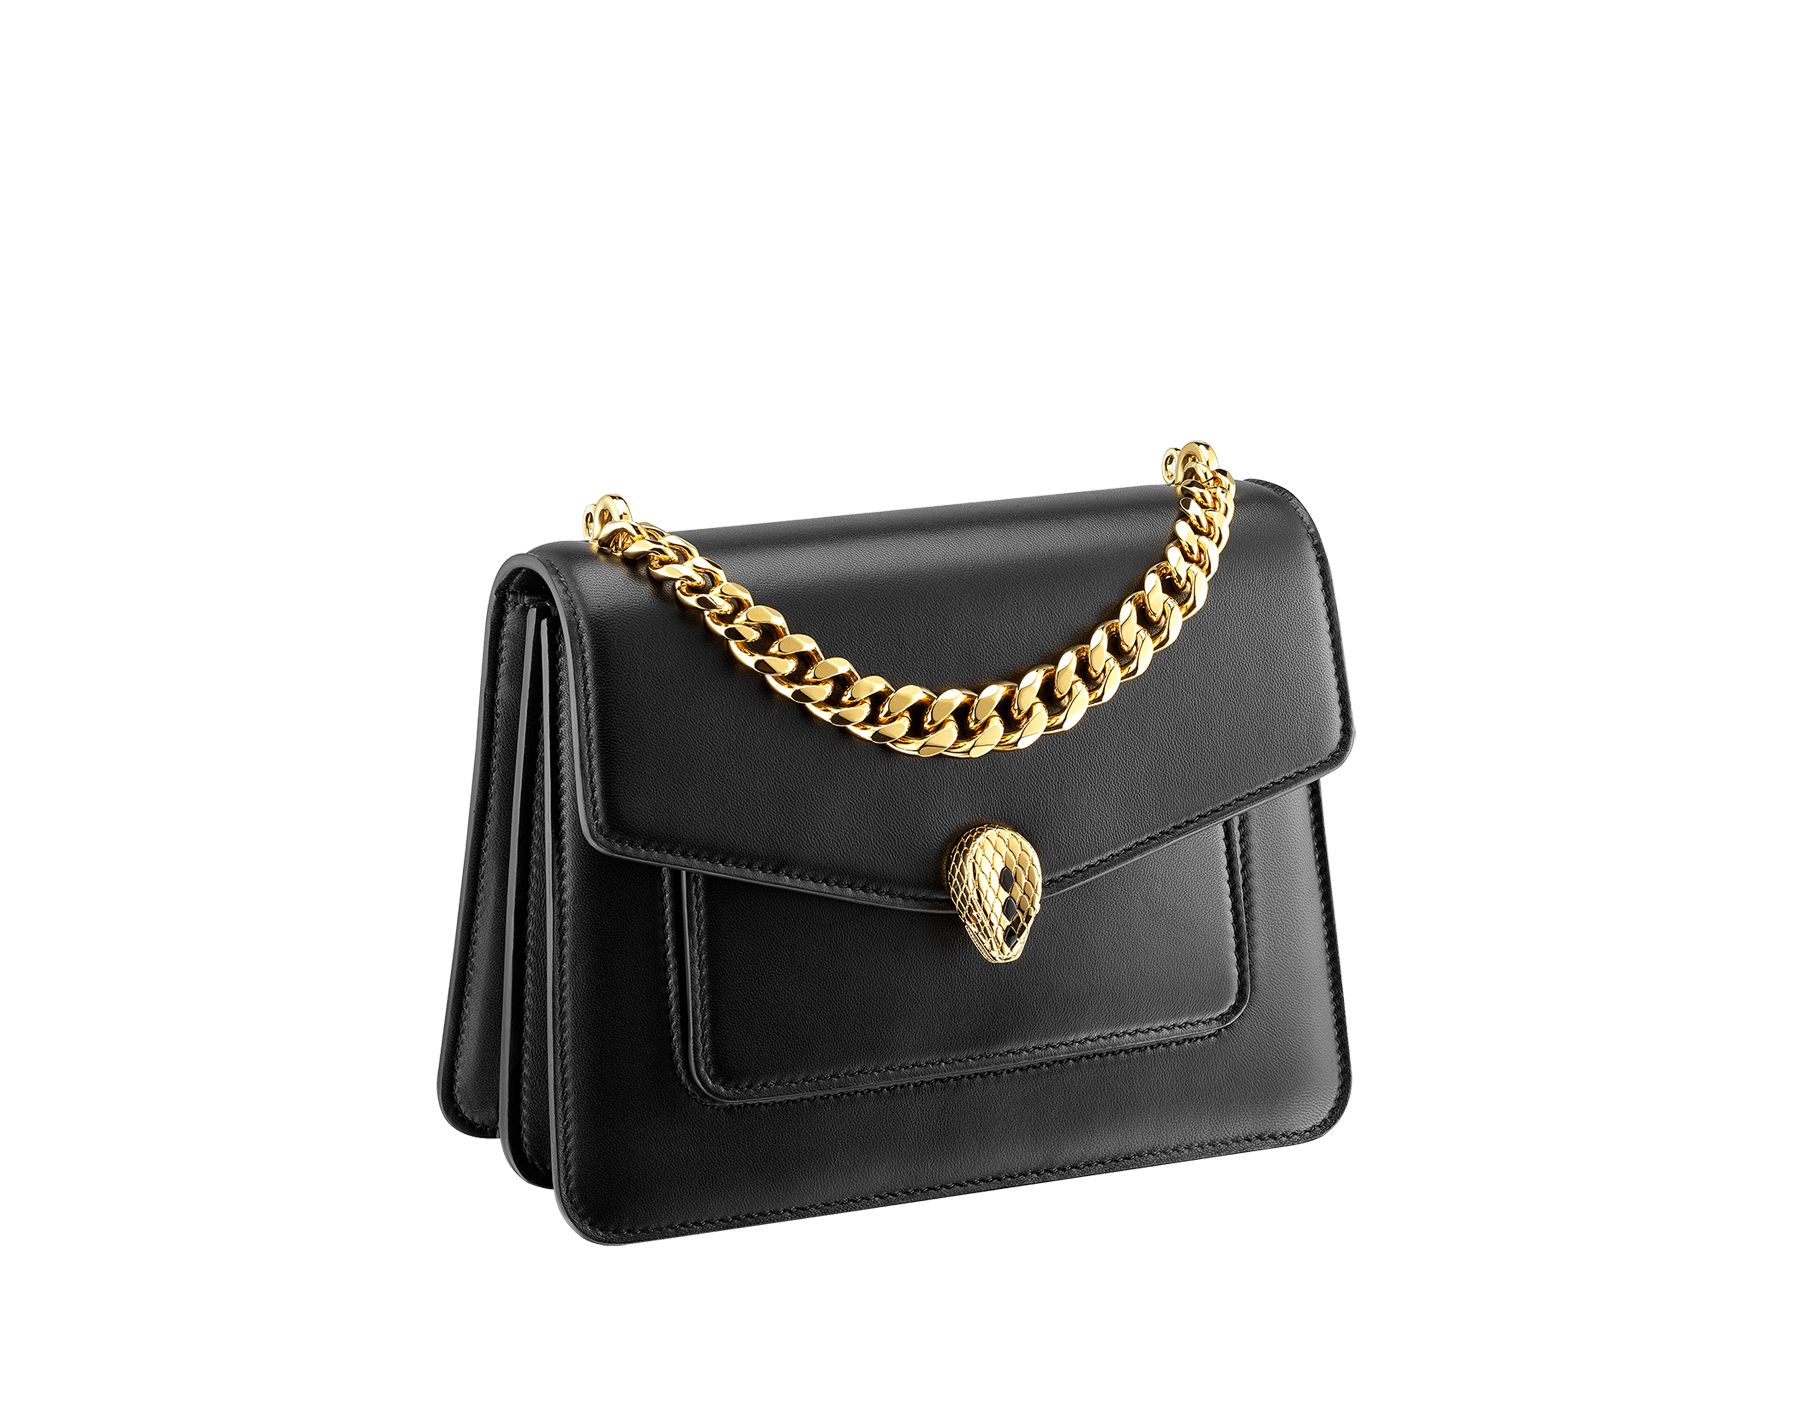 """""""Serpenti Forever"""" small maxi chain crossbody bag in black nappa leather, with black nappa leather inner lining. New Serpenti head closure in gold-plated brass, finished with small black onyx scales in the middle, and red enamel eyes. 291050 image 2"""